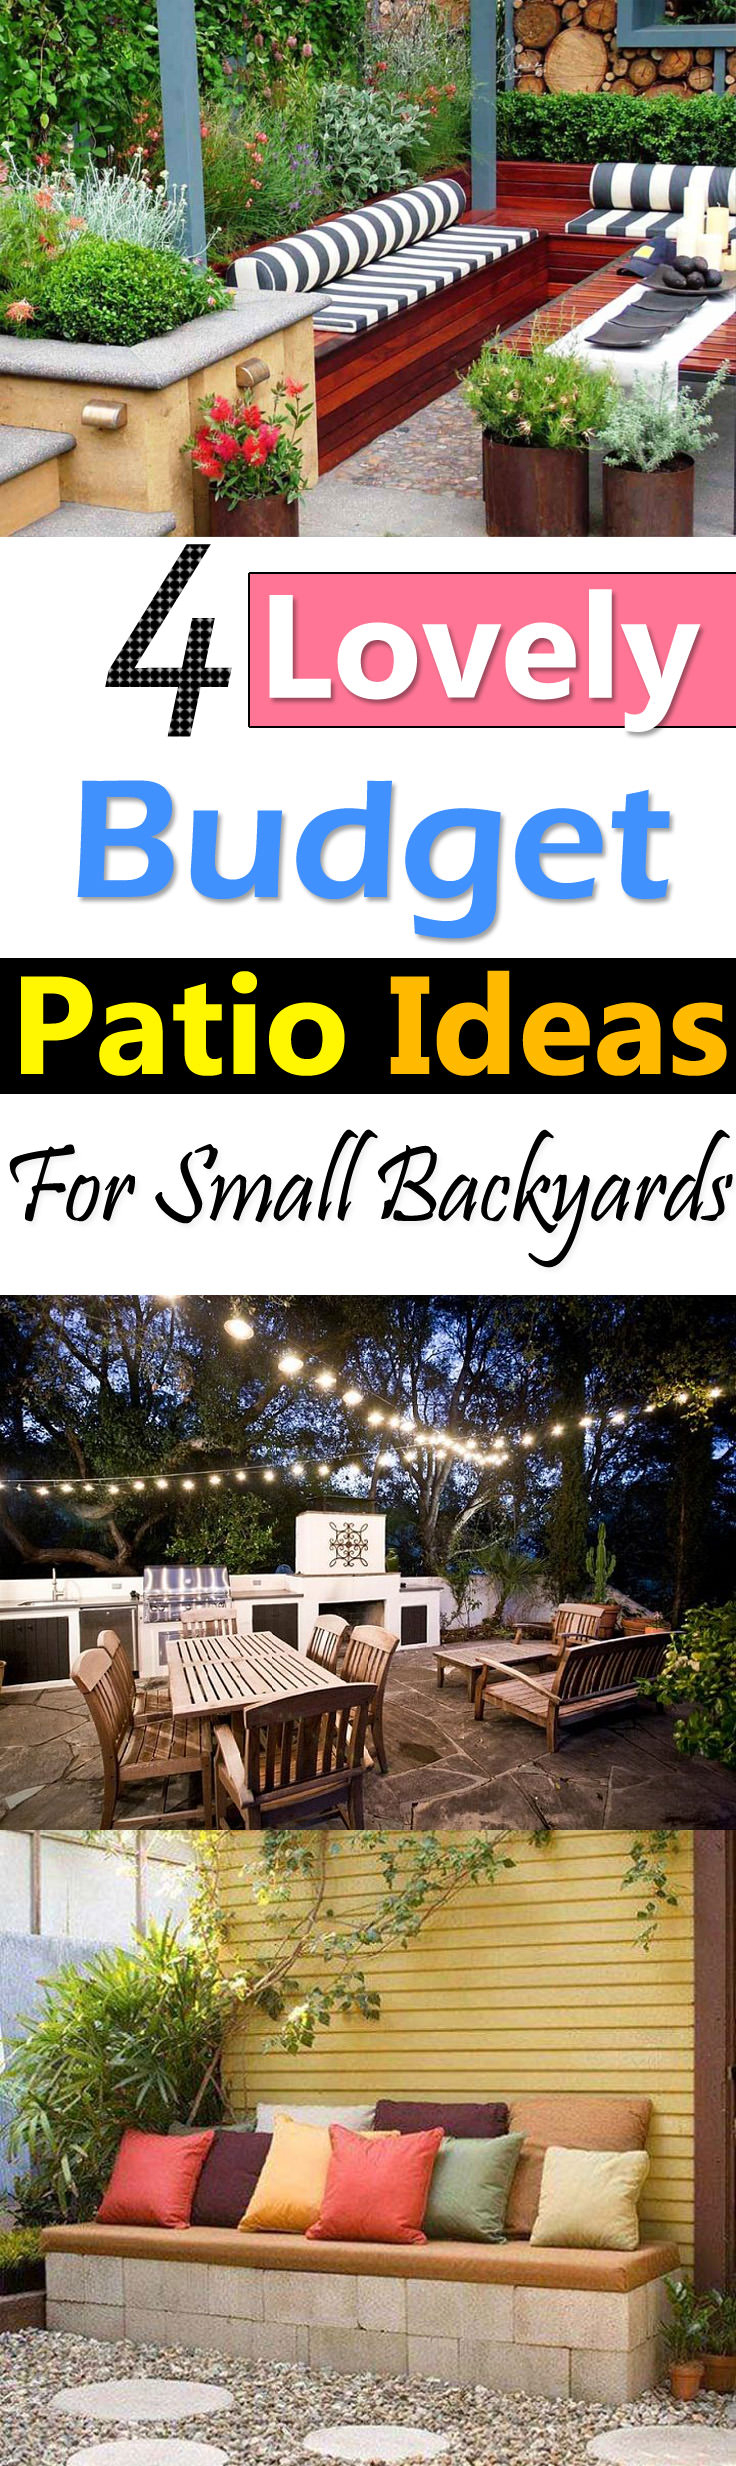 4 Lovely Budget Patio Ideas For Small Backyards Balcony Garden Web inside 11 Clever Designs of How to Build Small Backyard Patio Ideas On A Budget